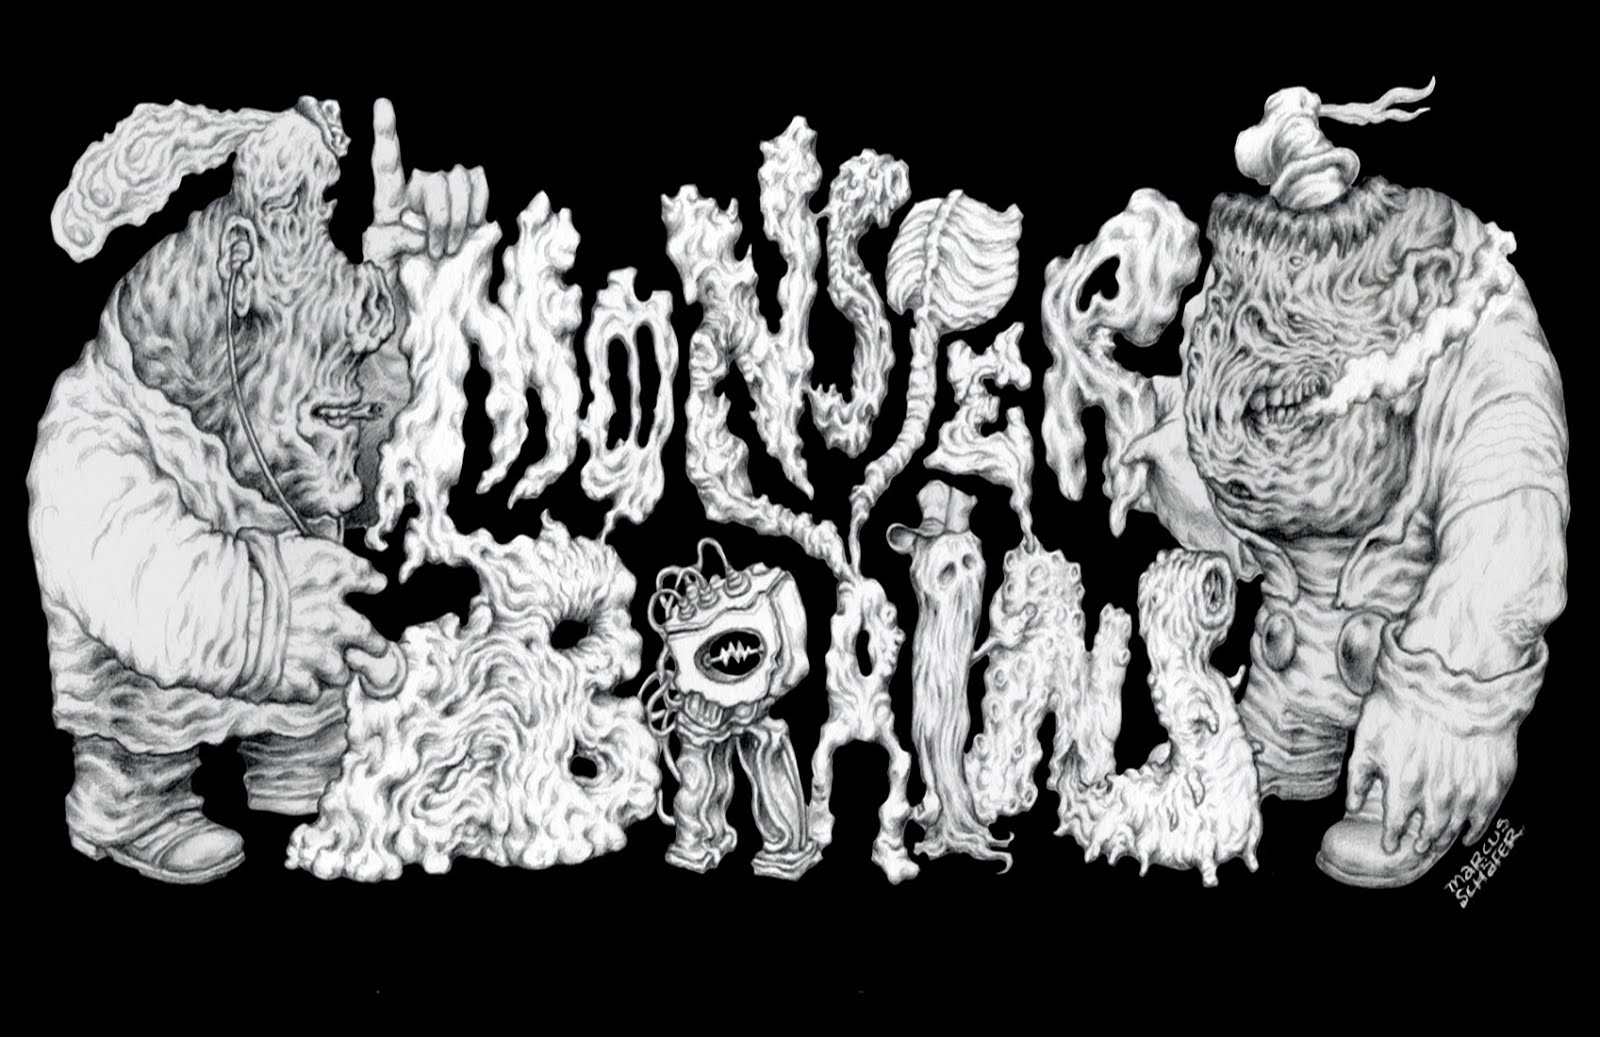 Monster Brains logo illustrated by Marcus Schäfer.